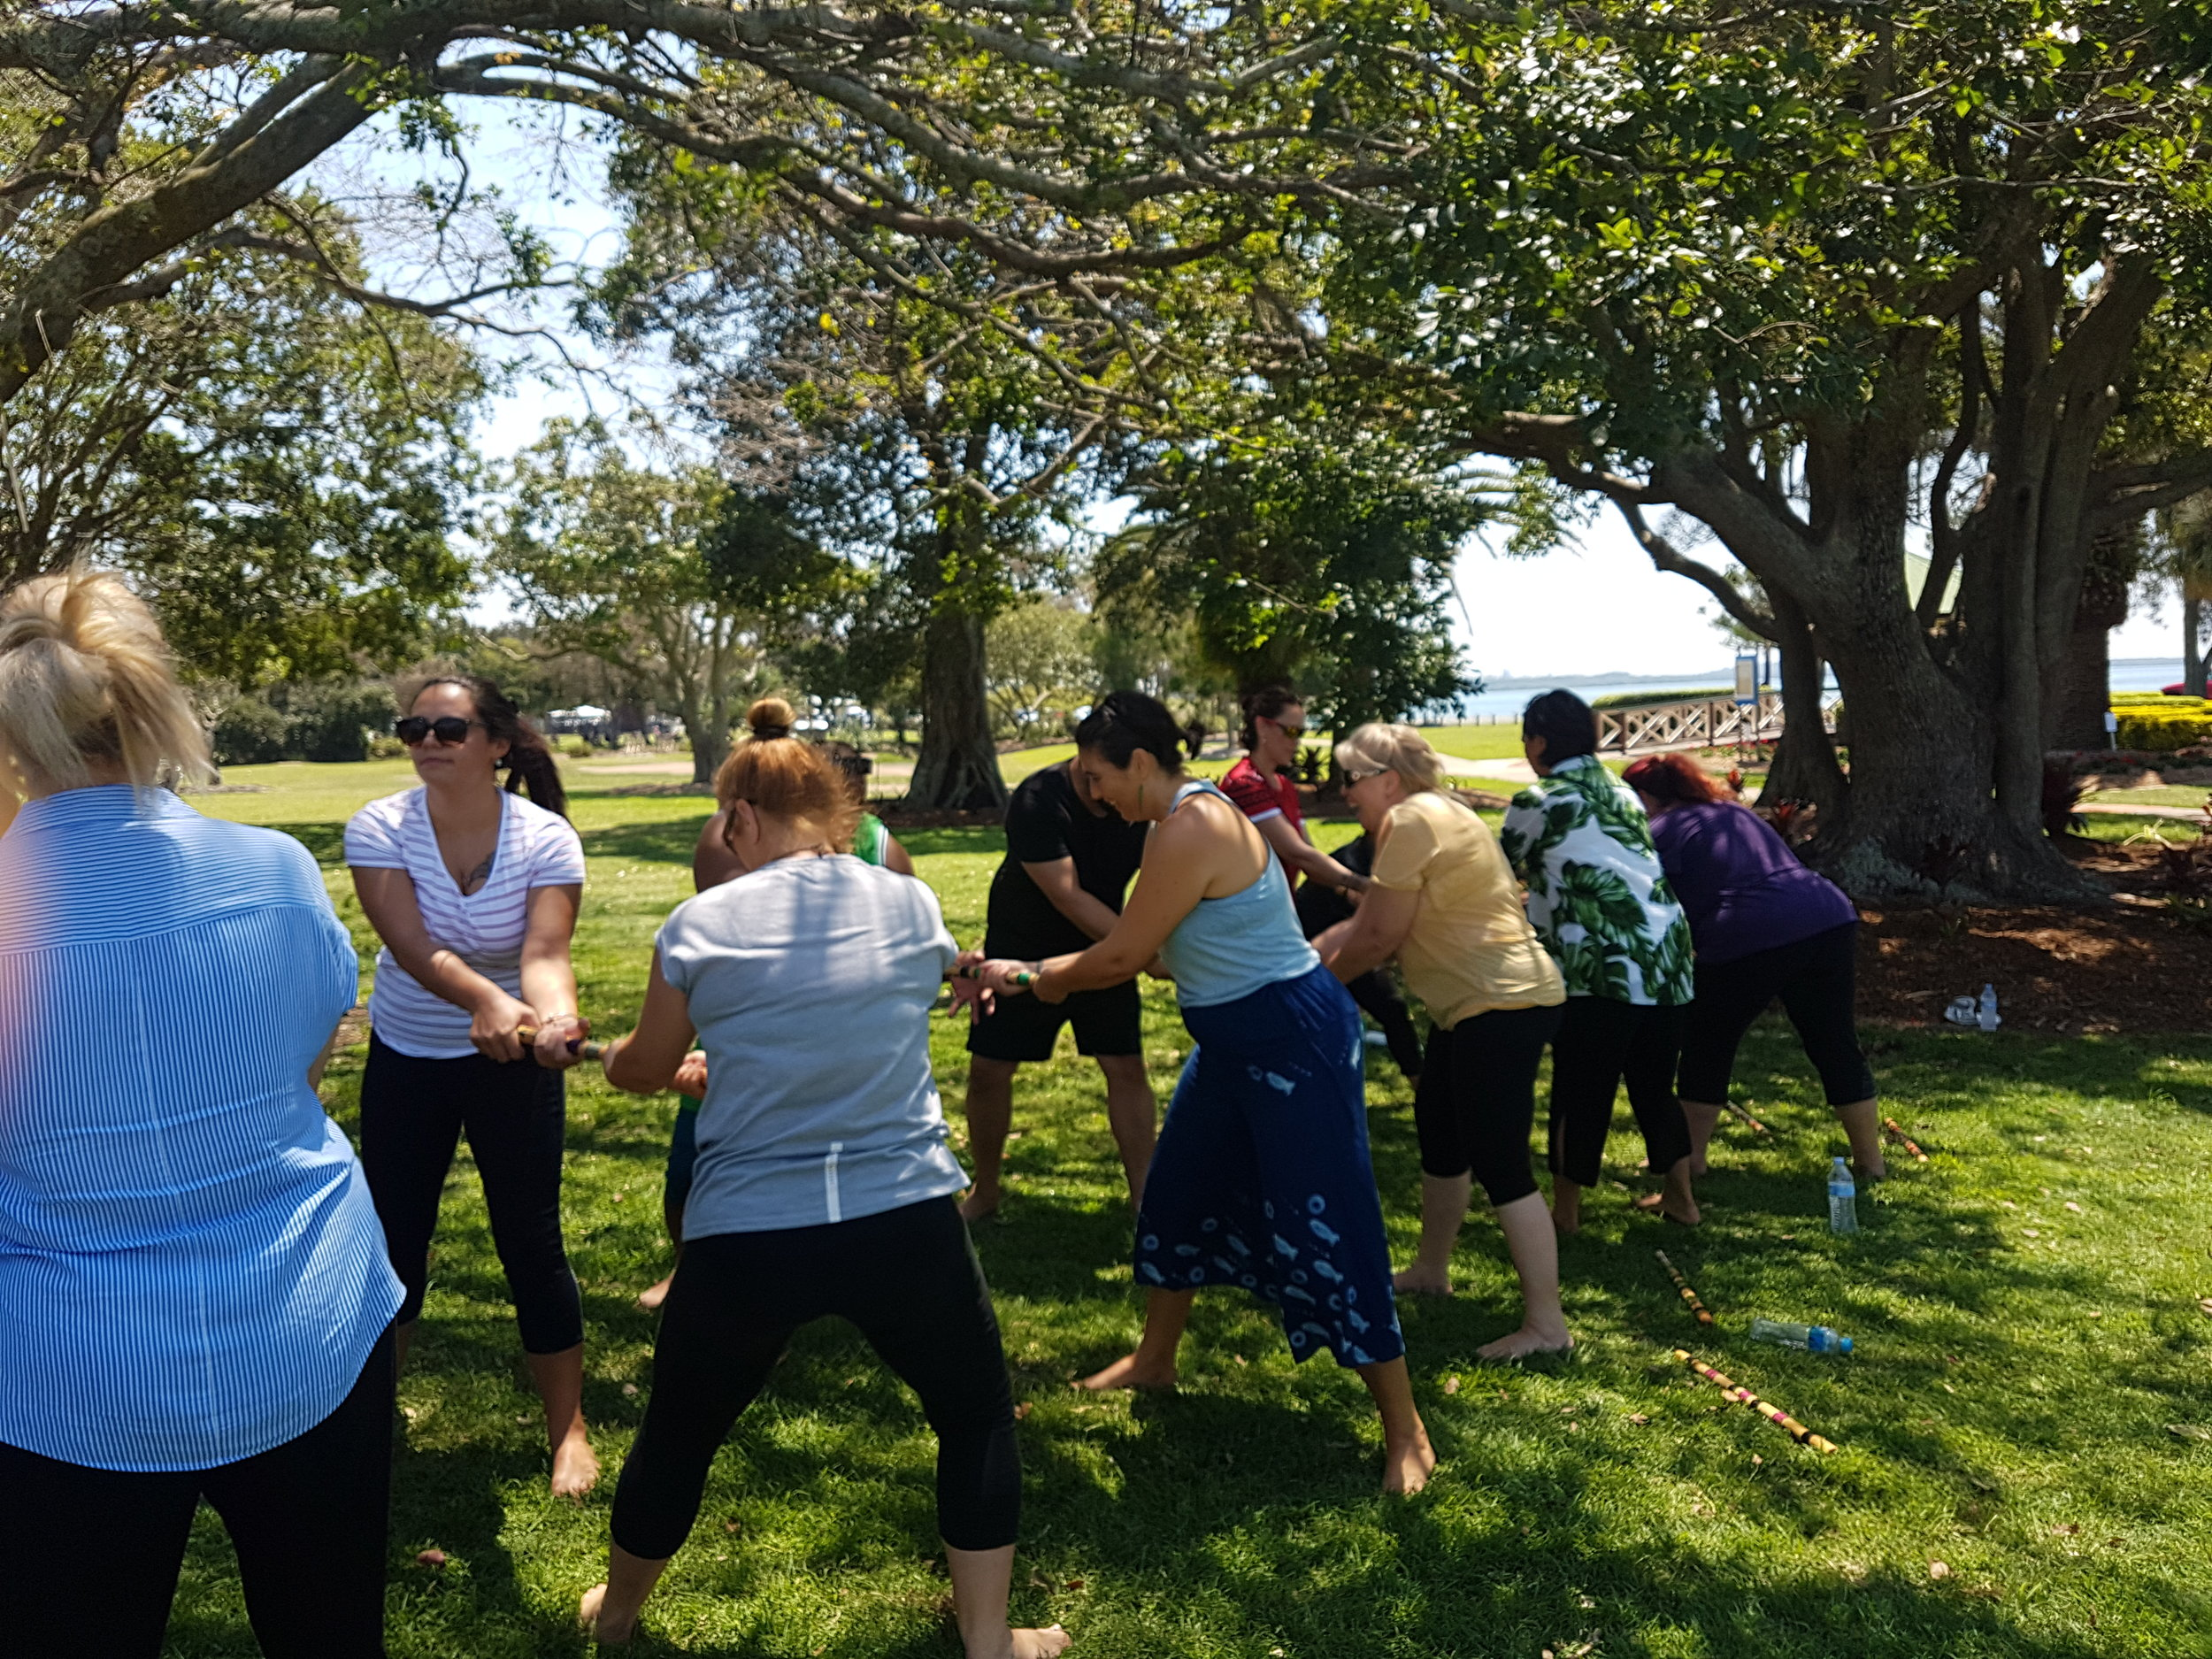 Rakau exercises for strength and co-ordination